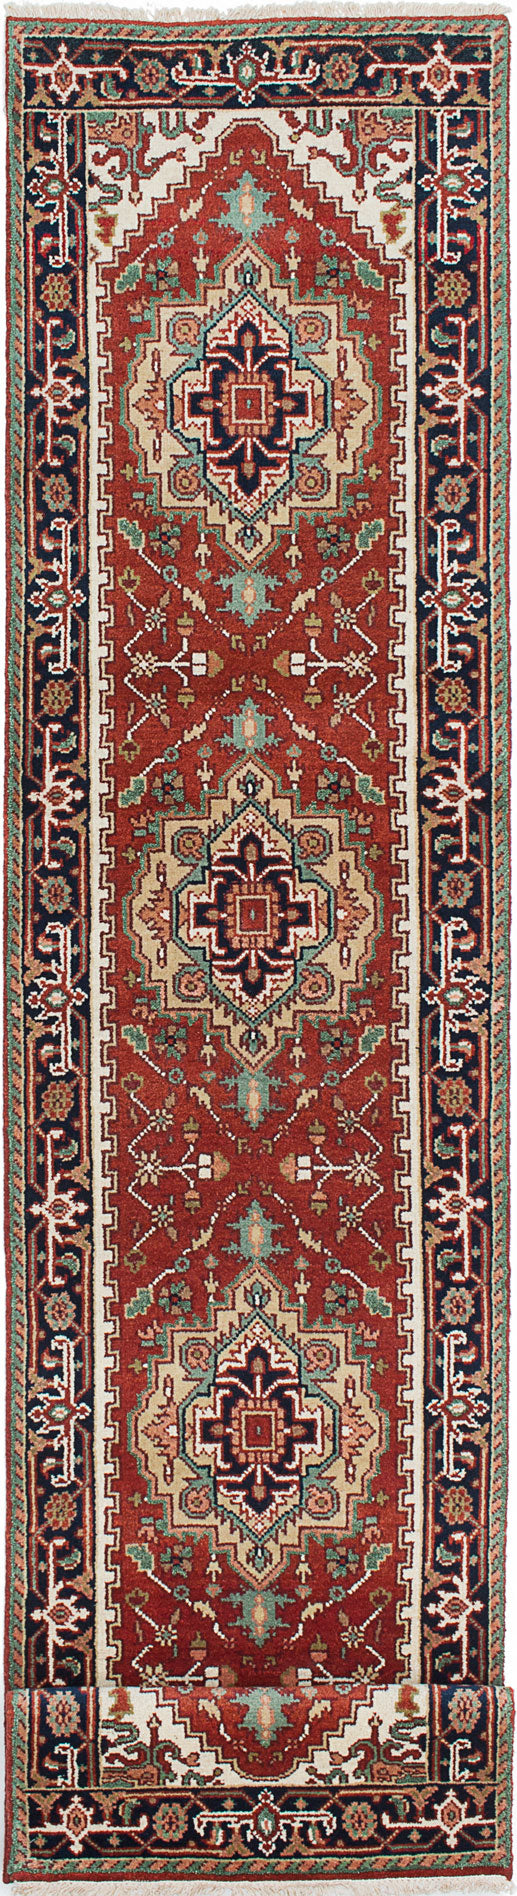 "Hand-knotted Indian Floral  Traditional Serapi-Heritage Runner rug  Dark Orange 2'6 x 11'9"" """